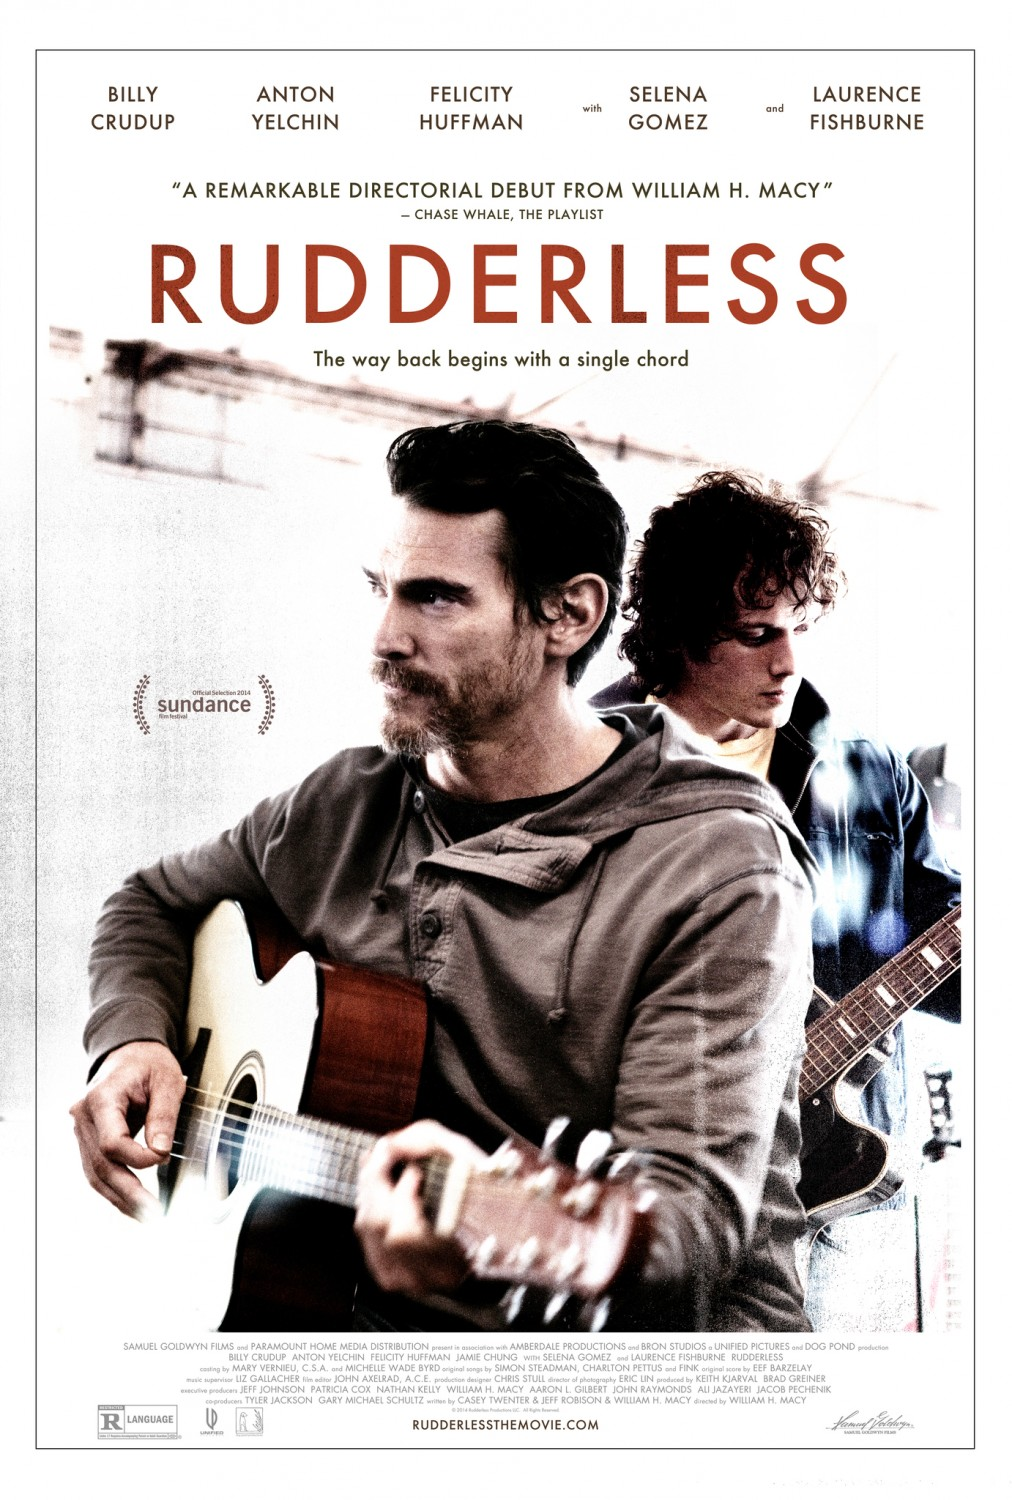 Too cool, a quote from my Sundance review of Rudderless made it on the poster.